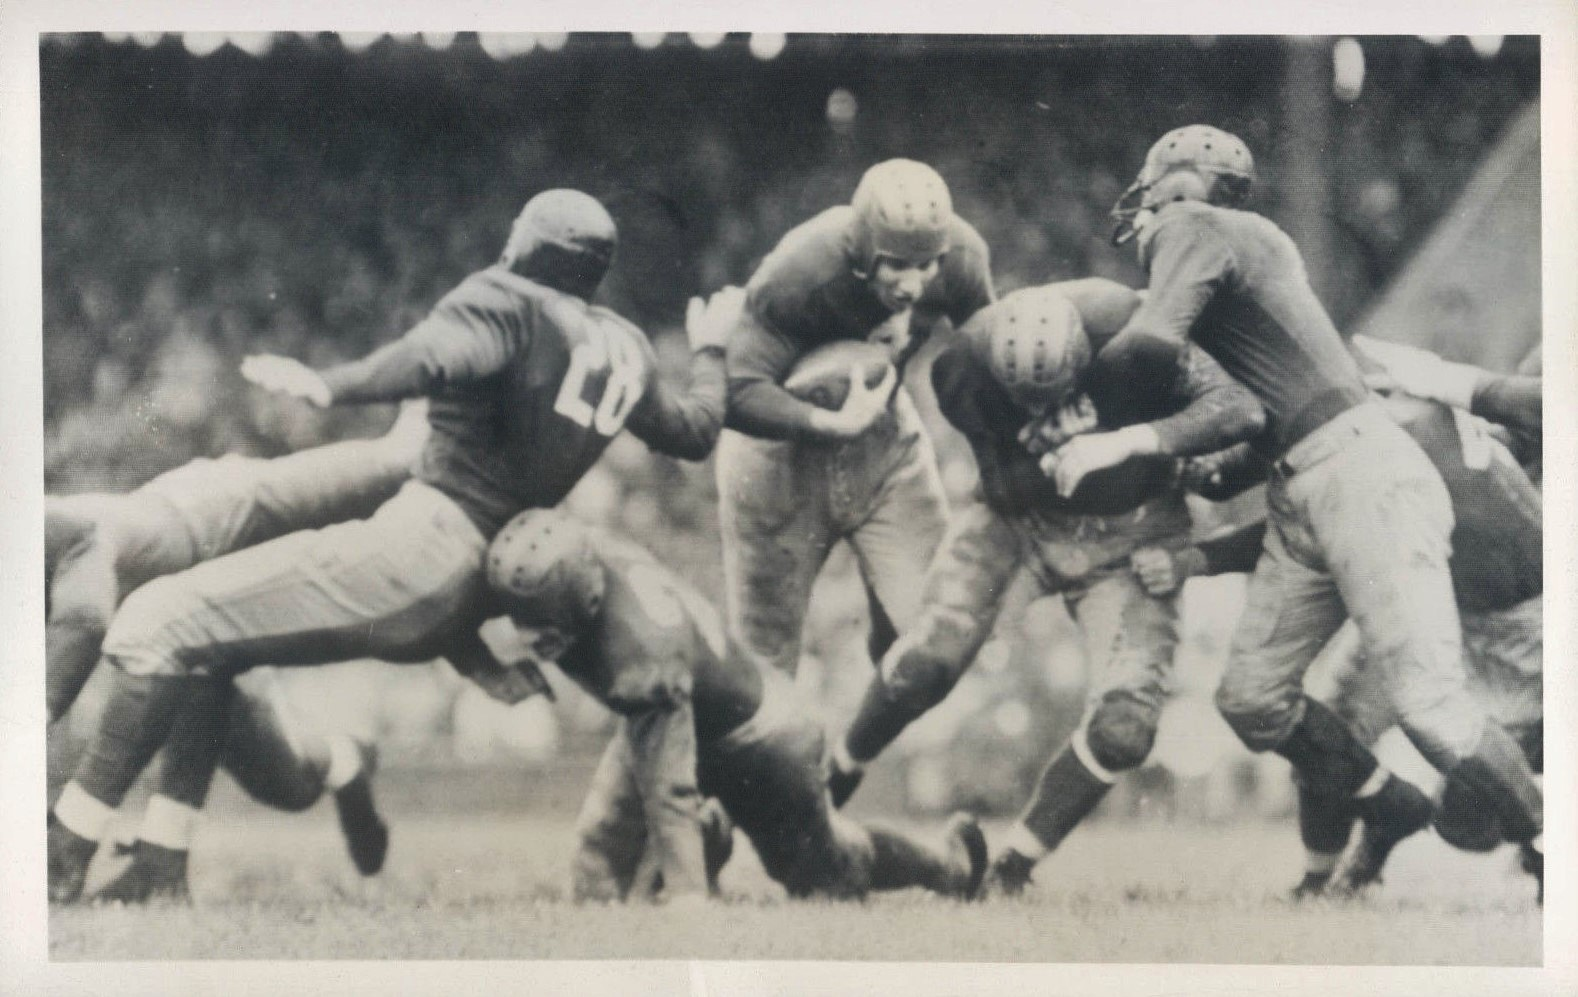 Tuffy Leemans, New York Giants (September 27, 1942)